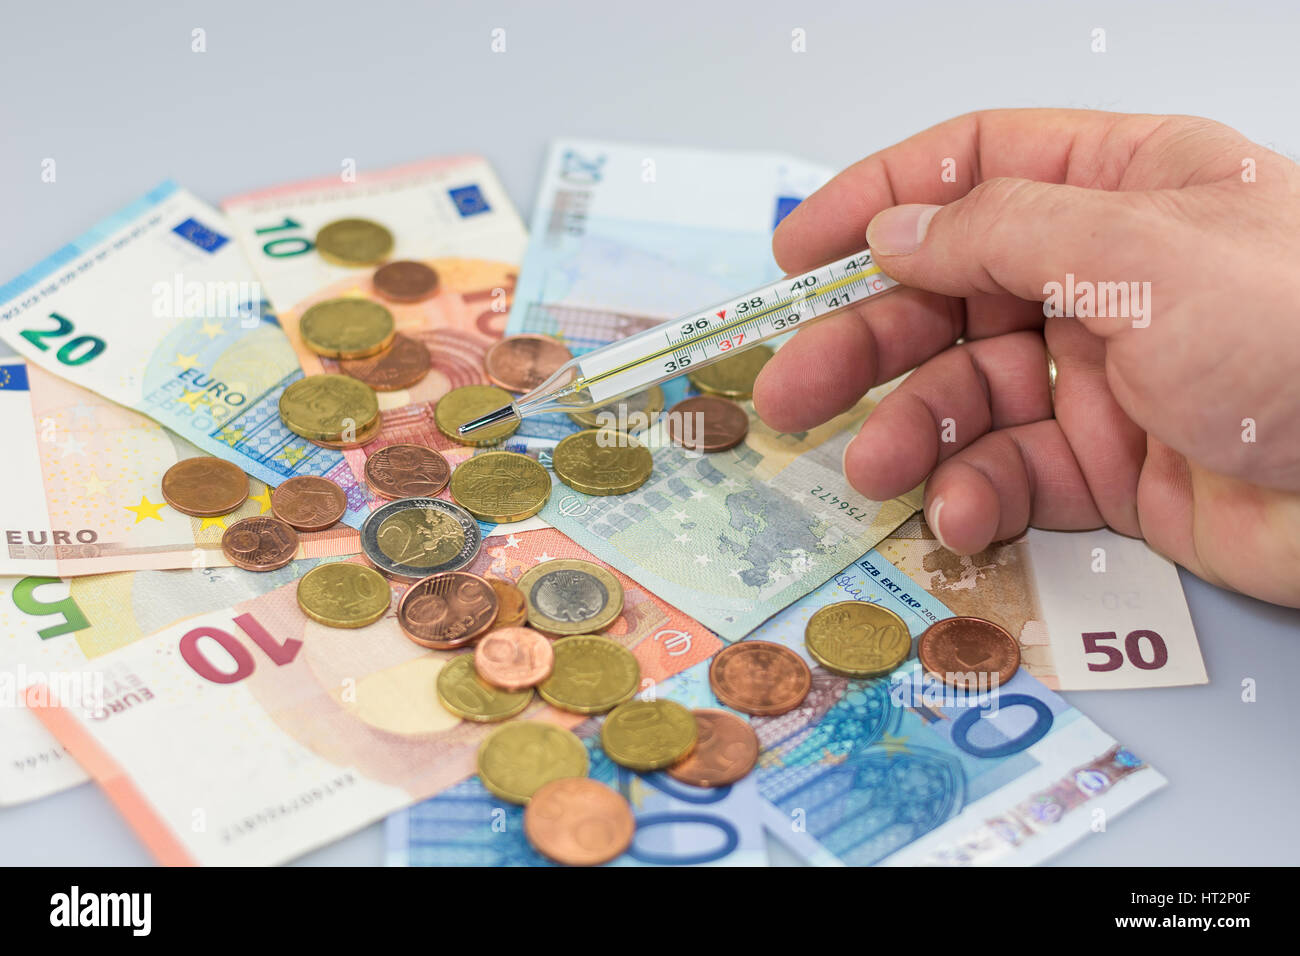 Temperature thermometer symbolizes the worries about the euro. - Stock Image